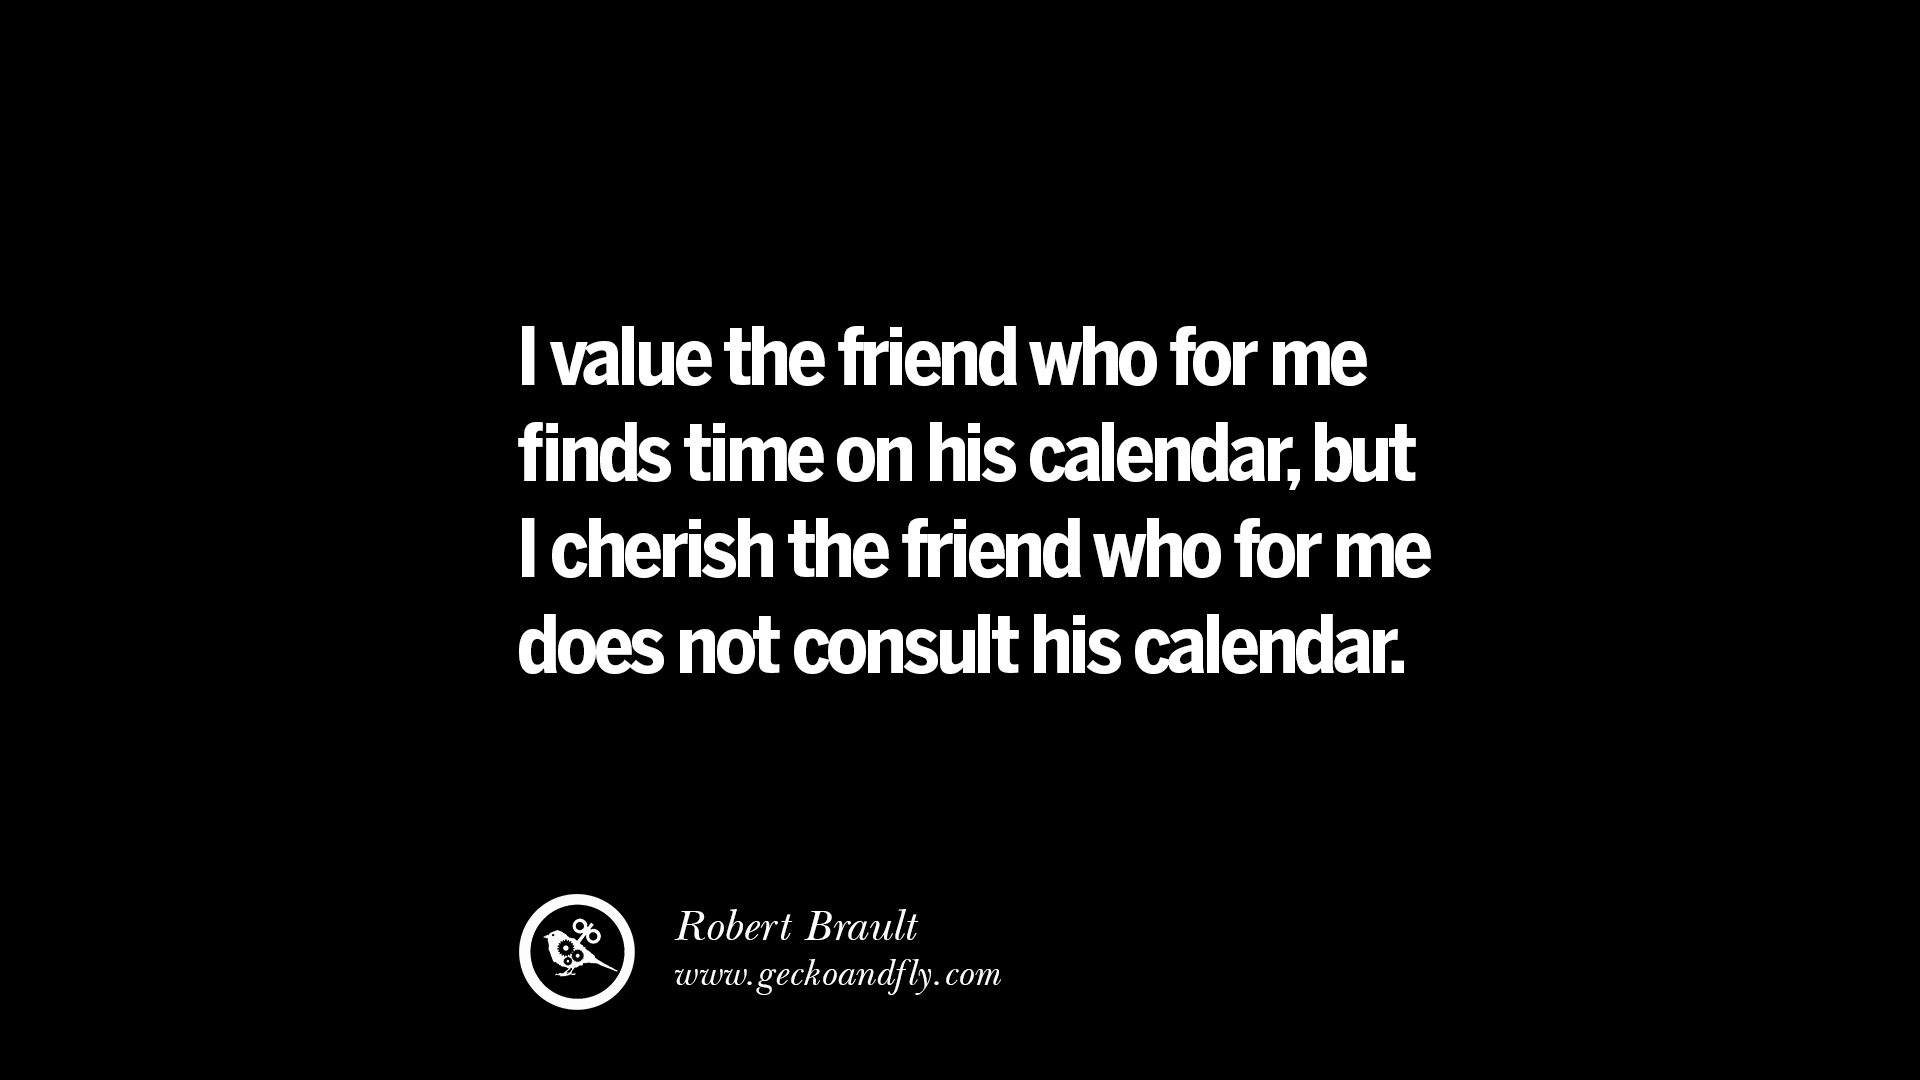 Image of: Spend Value The Friend Who For Me Finds Time On His Calendar But Cherish The Friend Who For Me Does Not Consult His Calendar Everyday Power 20 Amazing Quotes About Friendship Love And Friends